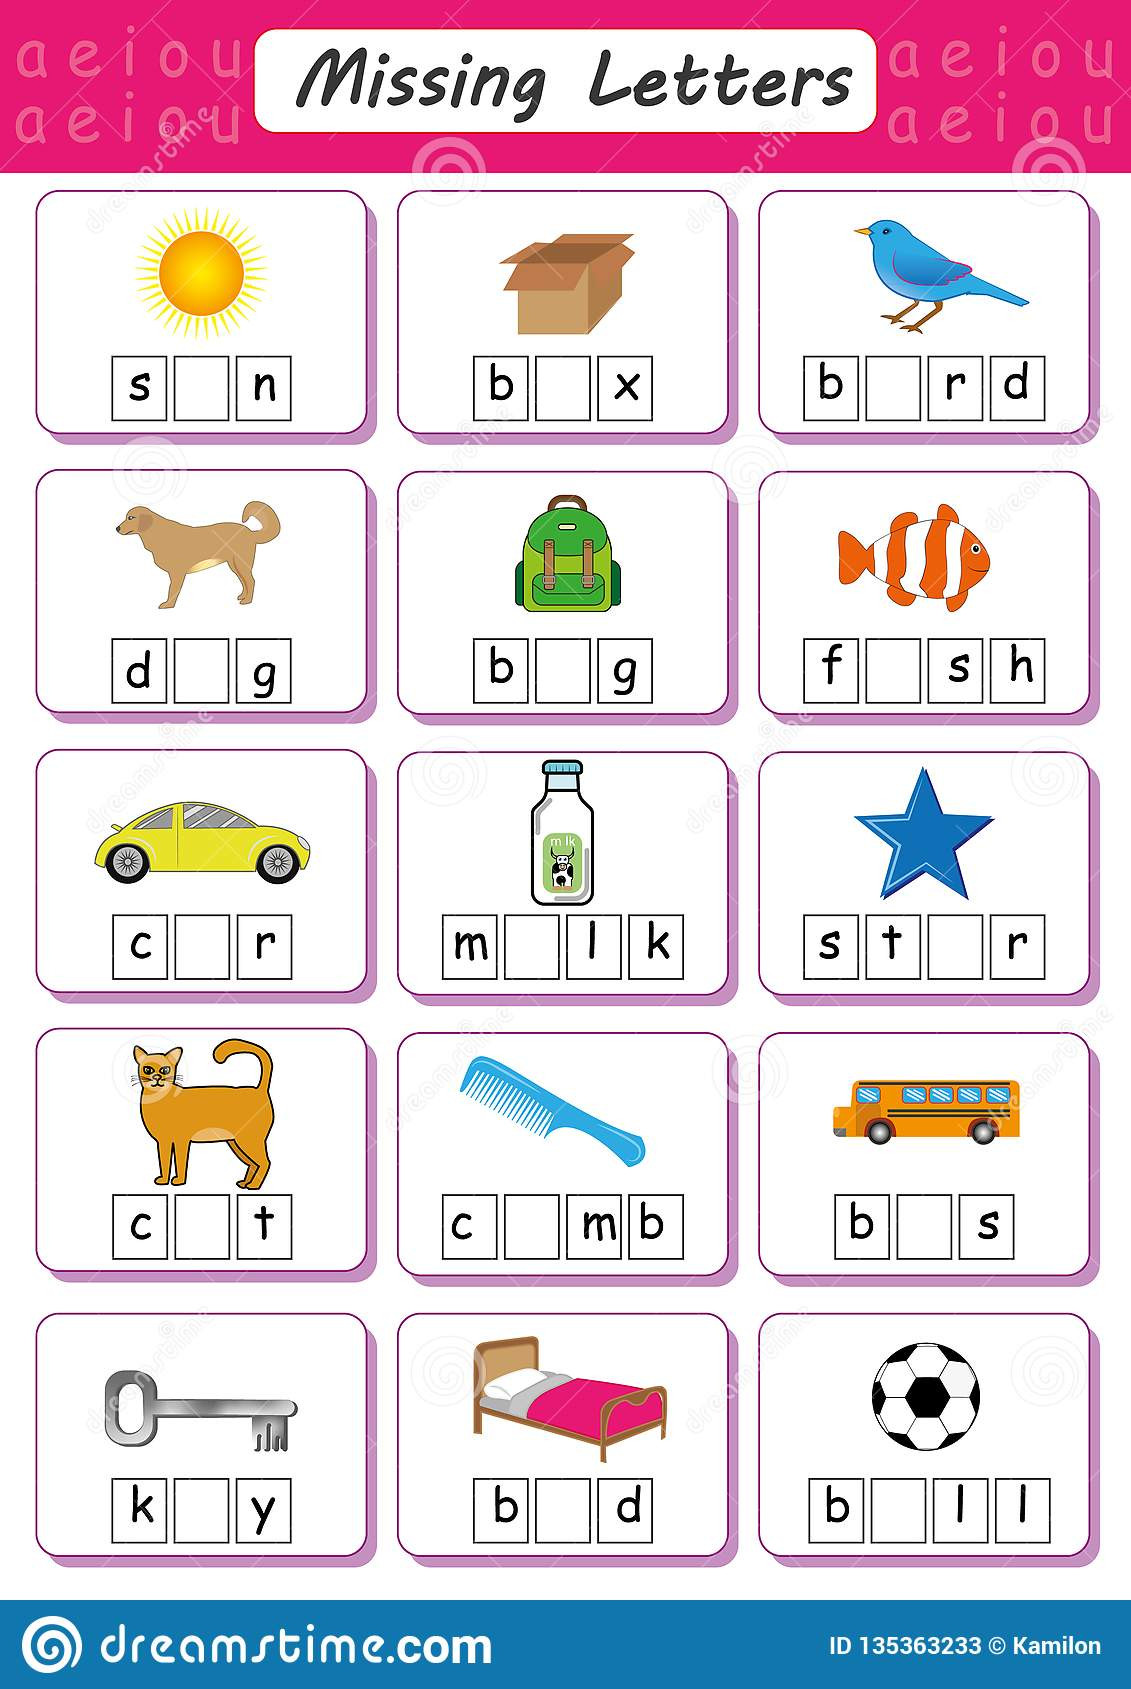 Missing Letters Worksheets for Kindergarten Write Missing Letter Write the Missing Vowel Worksheet for